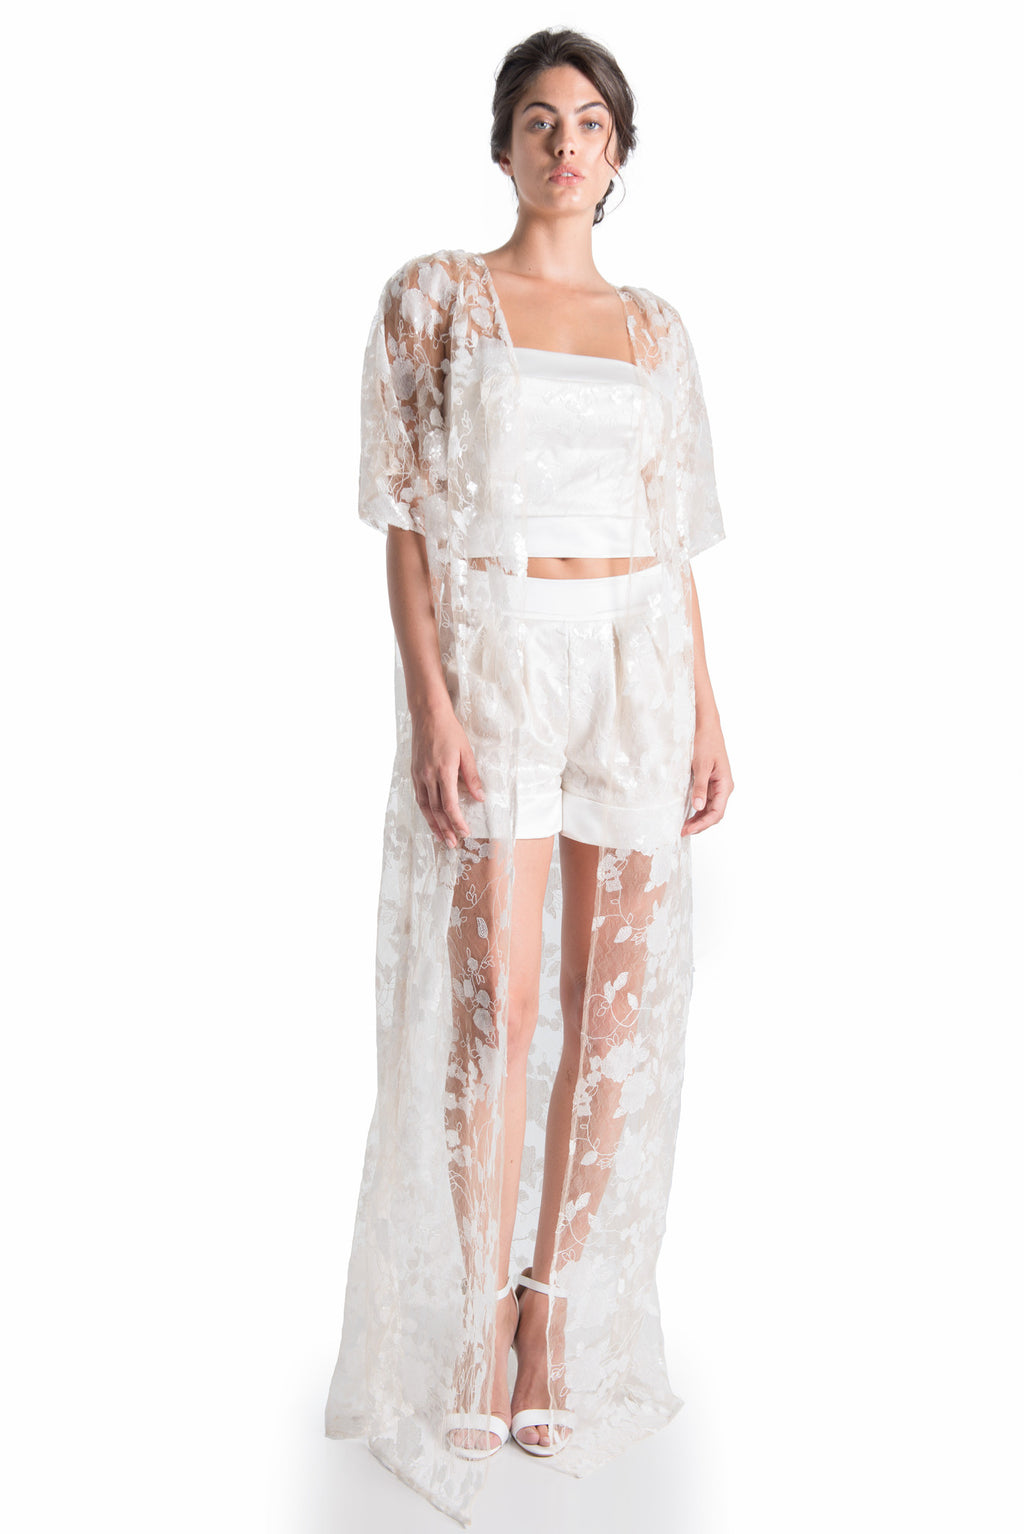 VENETIAN Lace Kimono - NATURAL WHT | SAMPLE | HAUS OF SONG